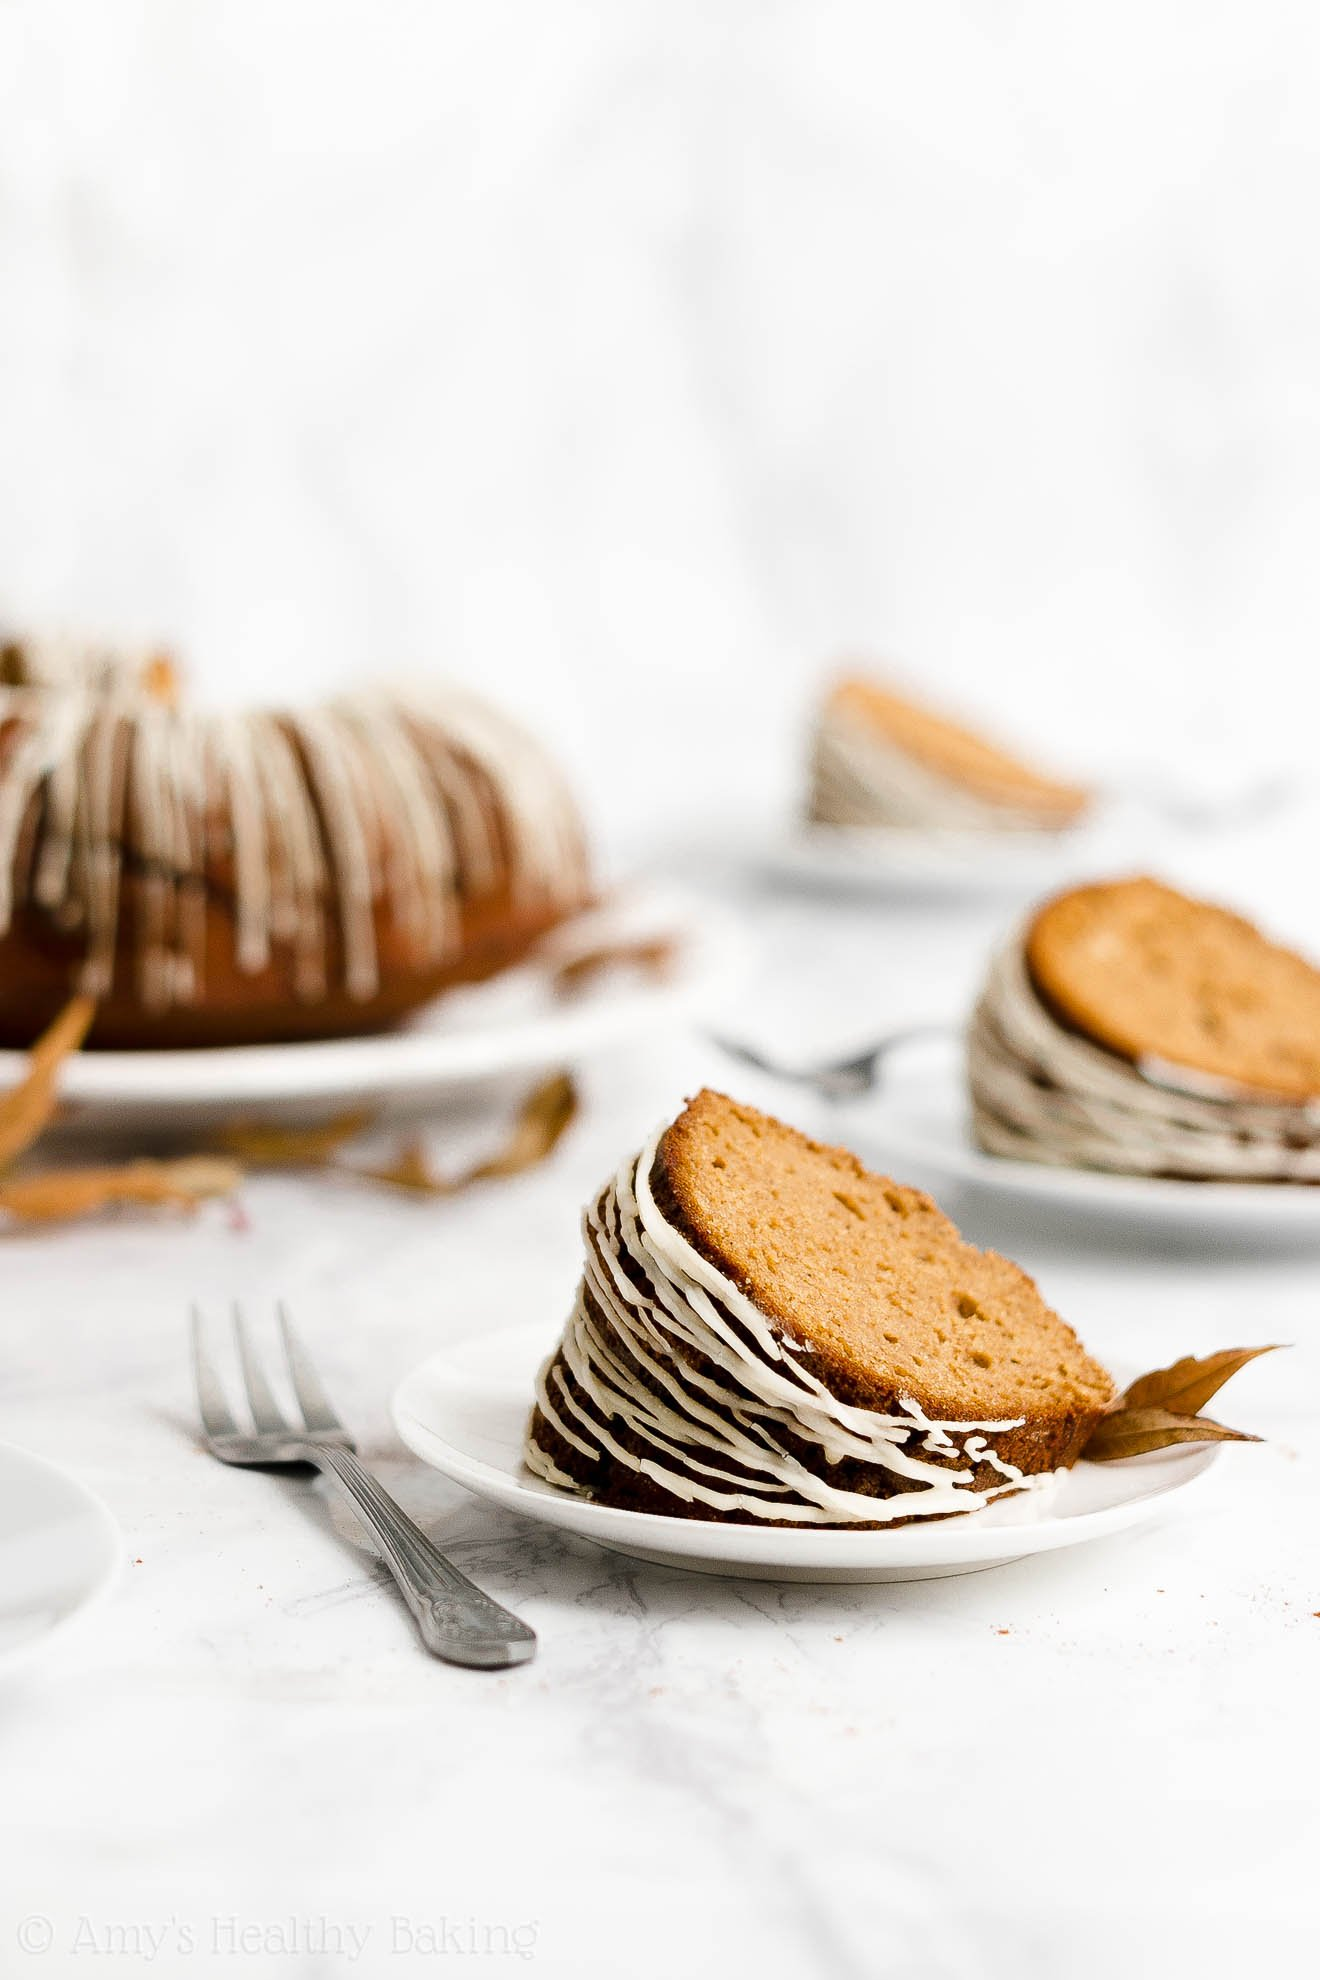 Ultimate Healthy Gluten Free Classic Molasses Gingerbread Bundt Cake with Glaze